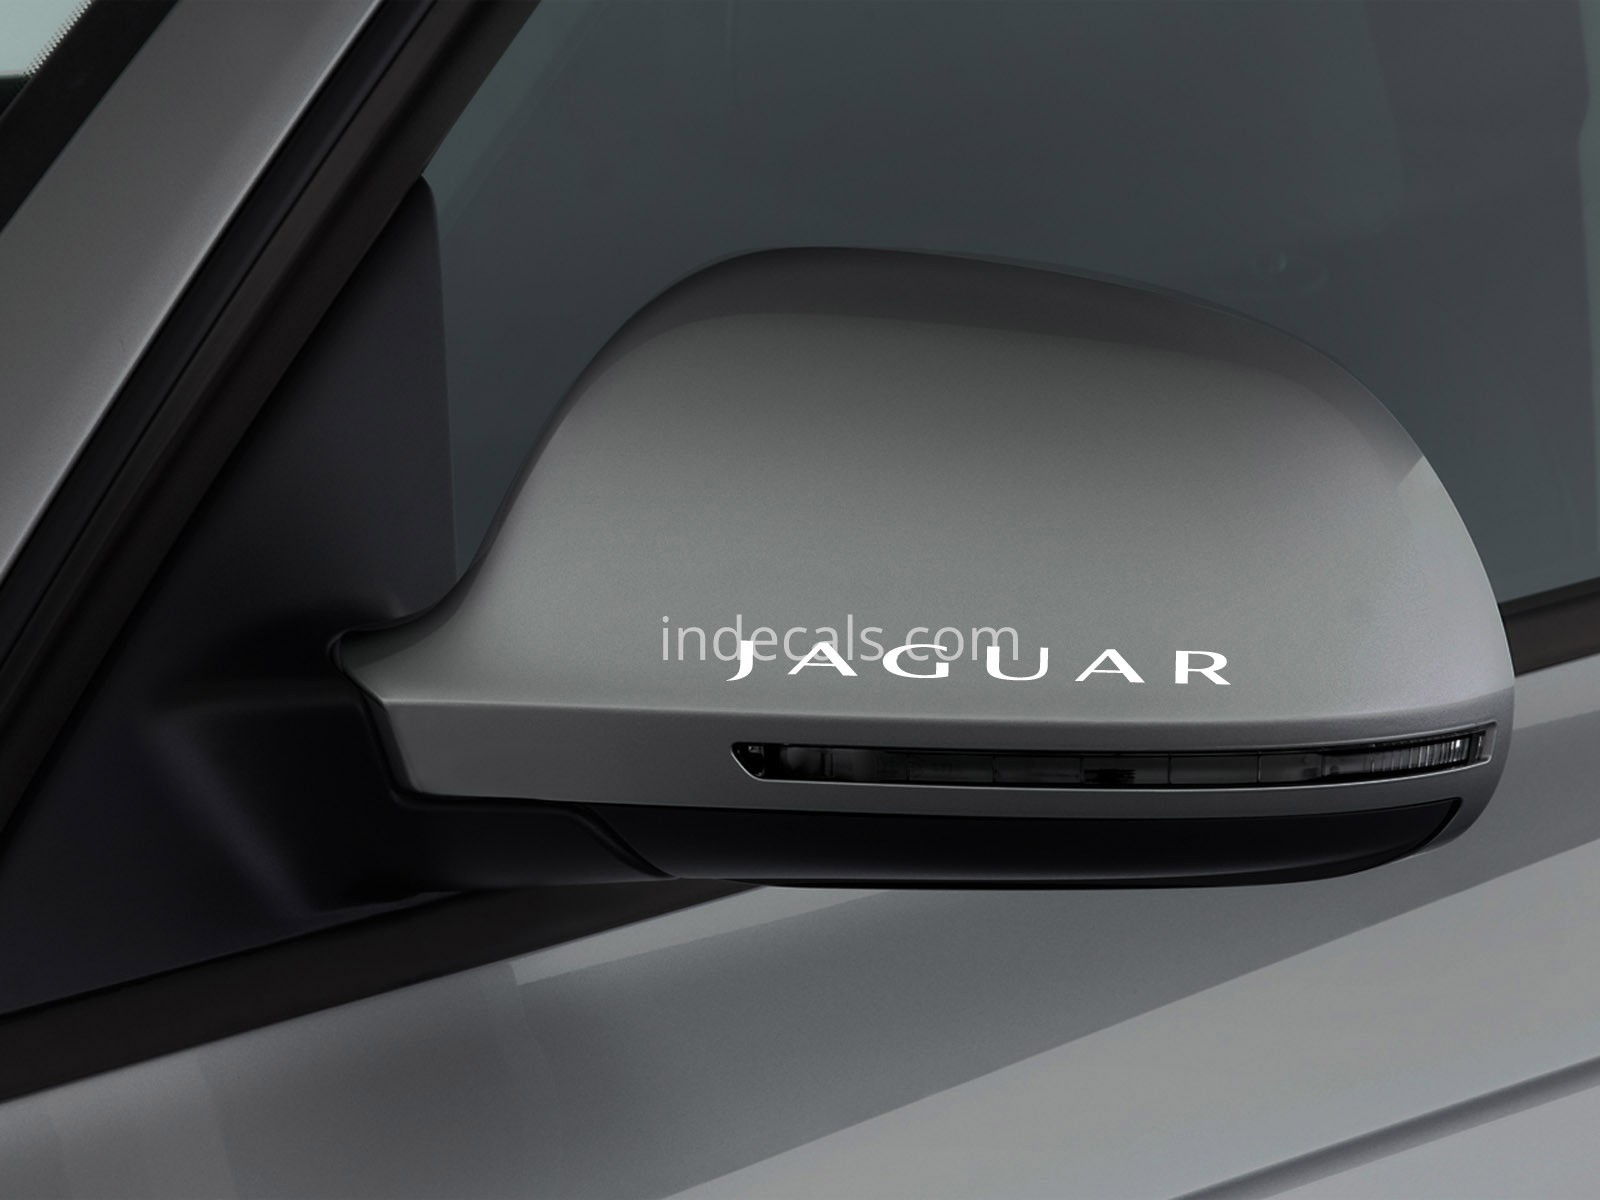 3 x Jaguar Stickers for Mirror - White